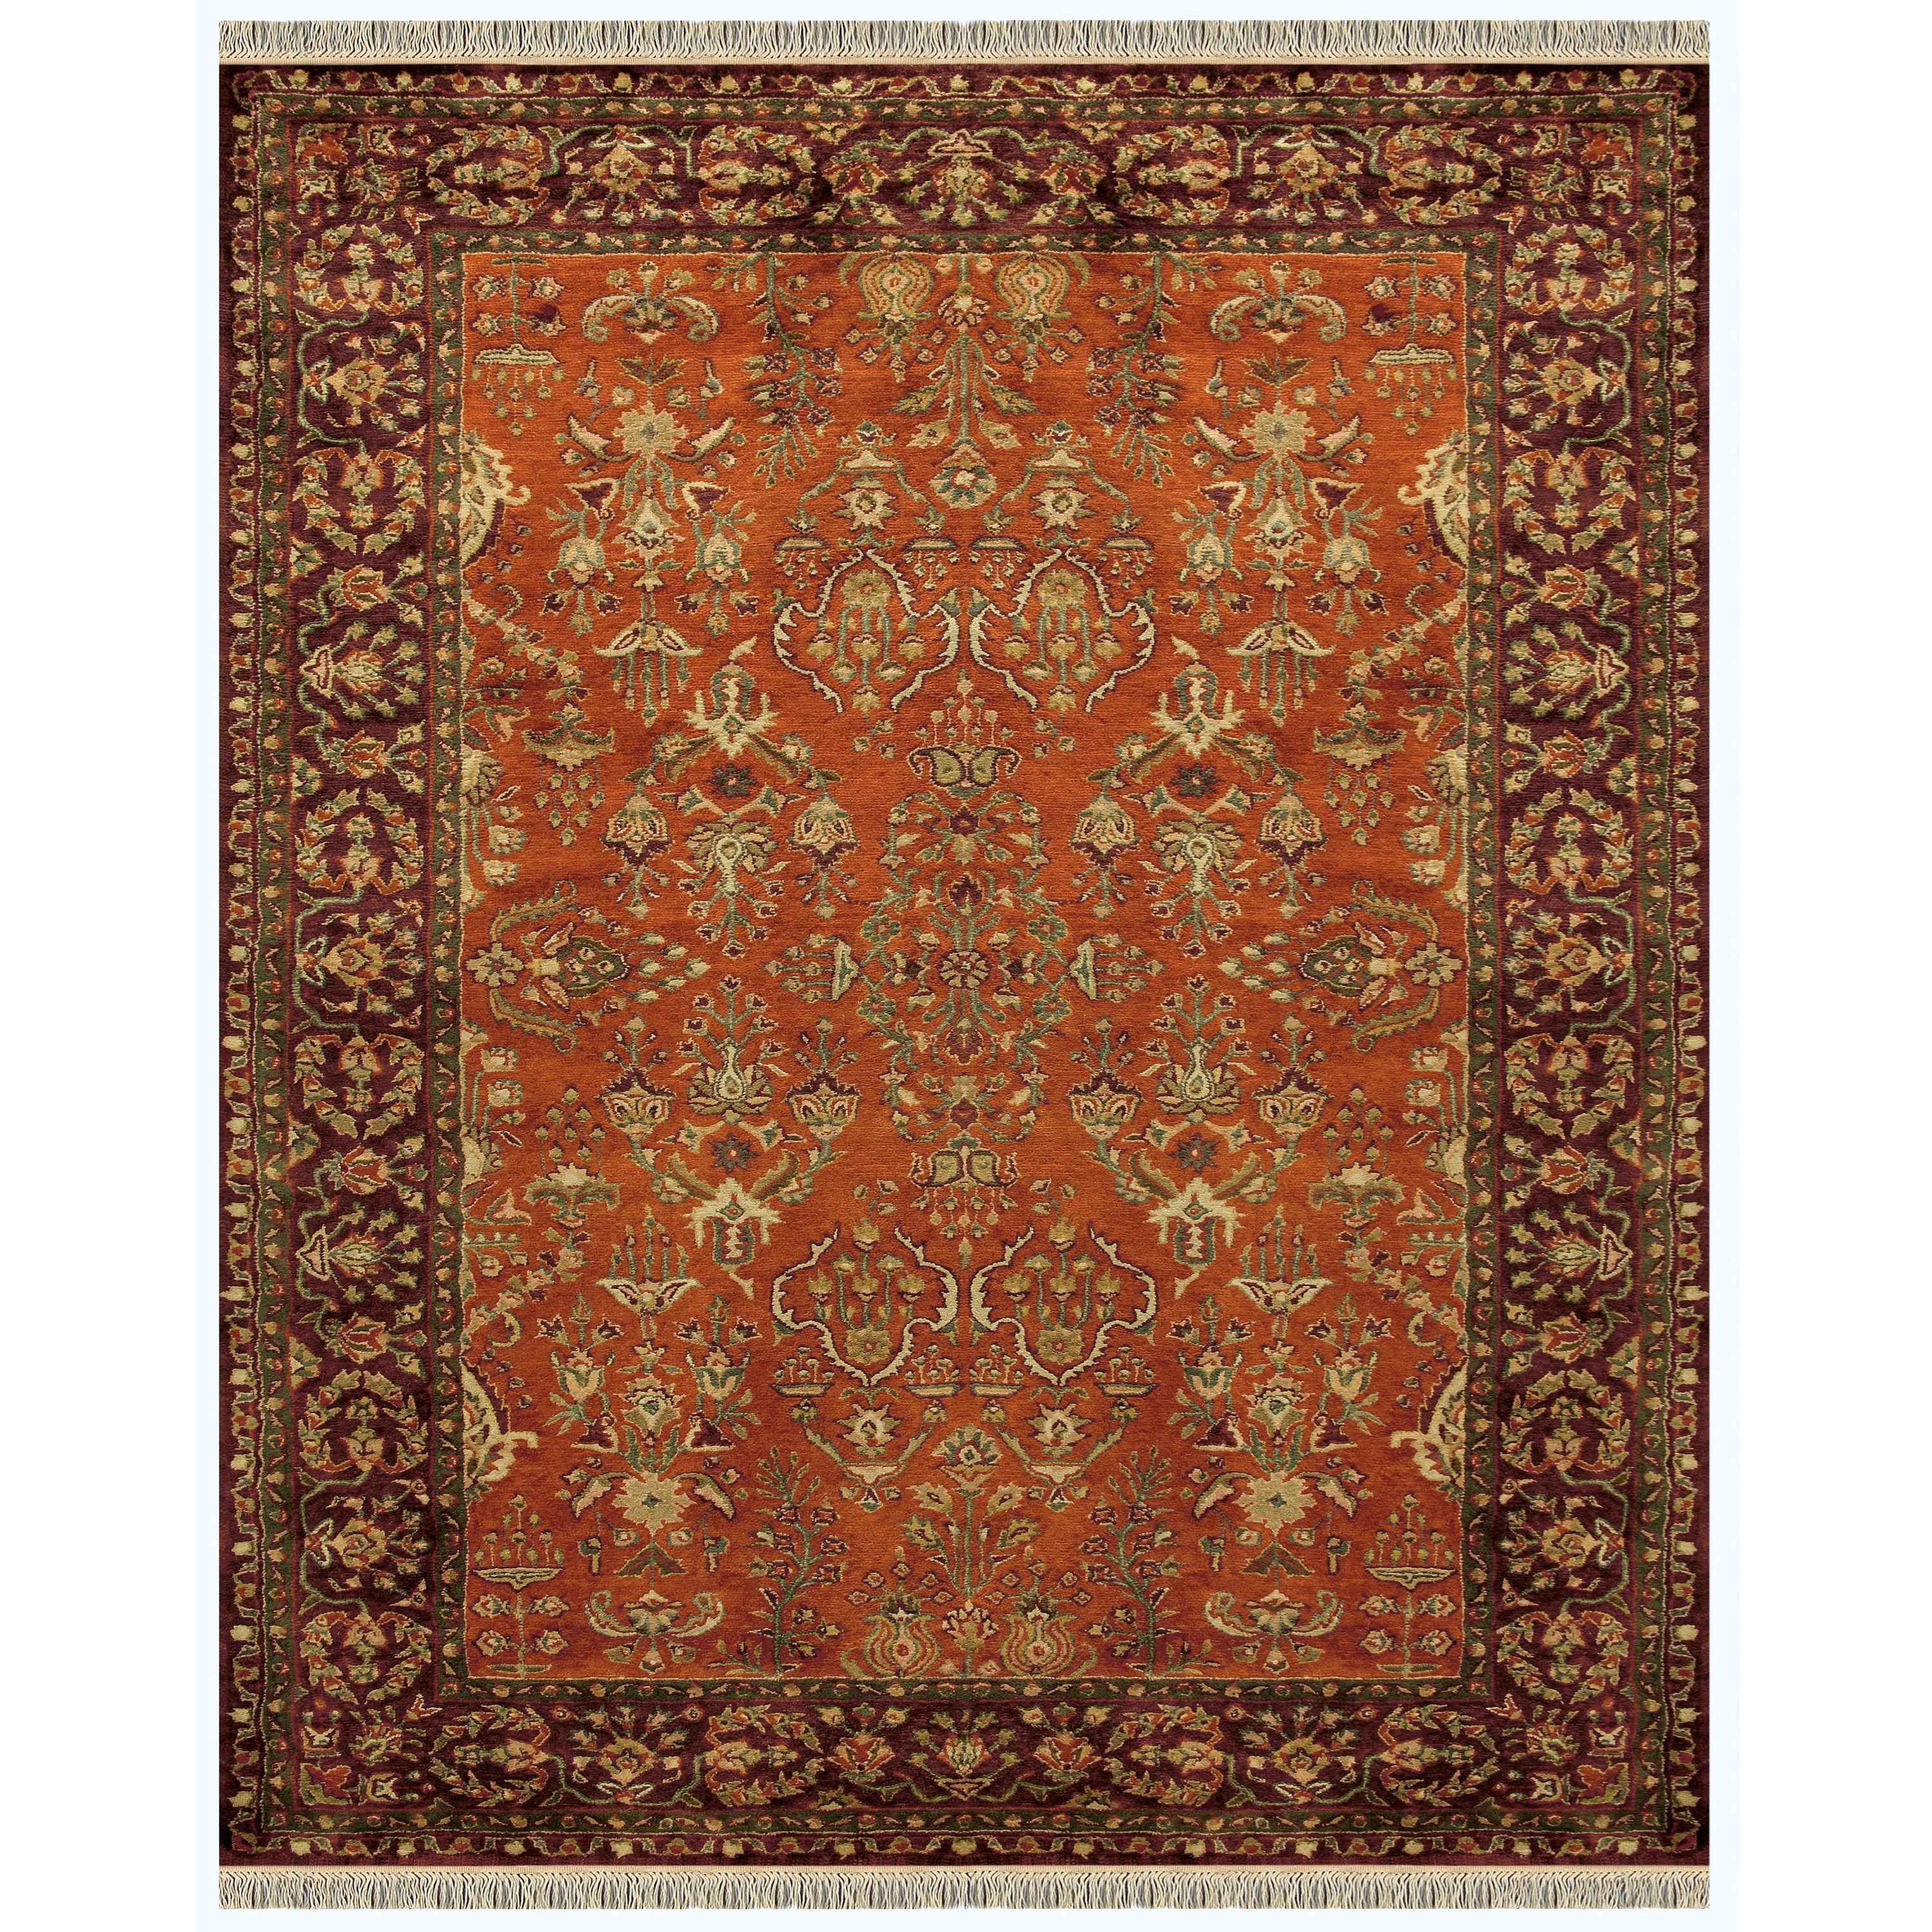 """Amore Cinnamon/Plum 3'-6"""" x 5'-6"""" Area Rug by Feizy Rugs at Sprintz Furniture"""